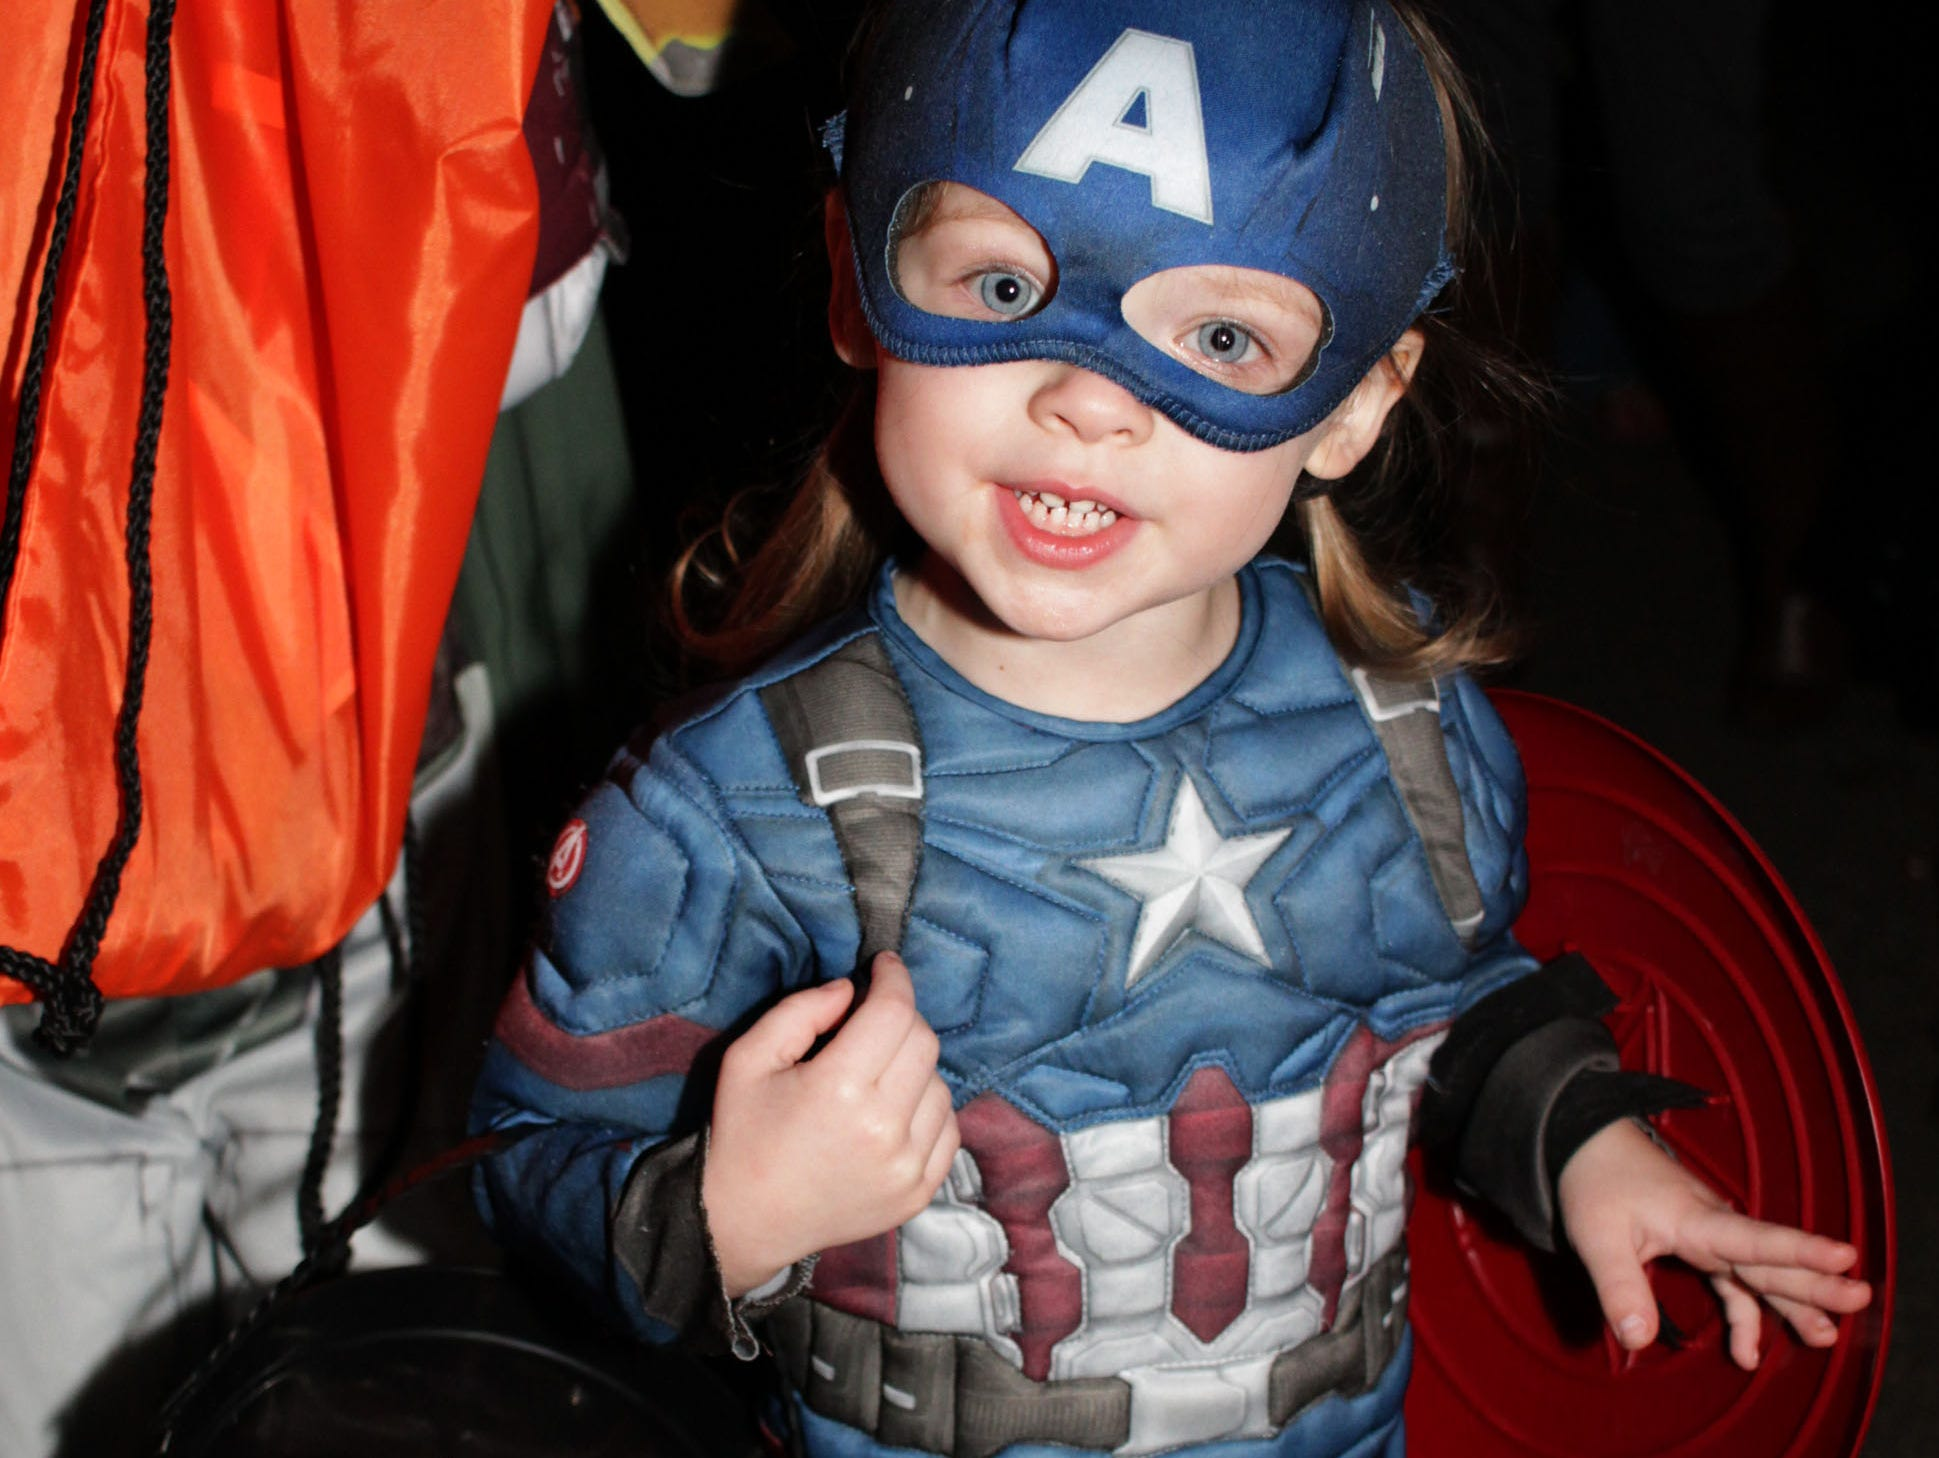 Hayden Napier wanted to be Captain America for Halloween and so she was, at Drakes Creek Park in Hendersonville, TN on Tuesday, October 30, 2018.